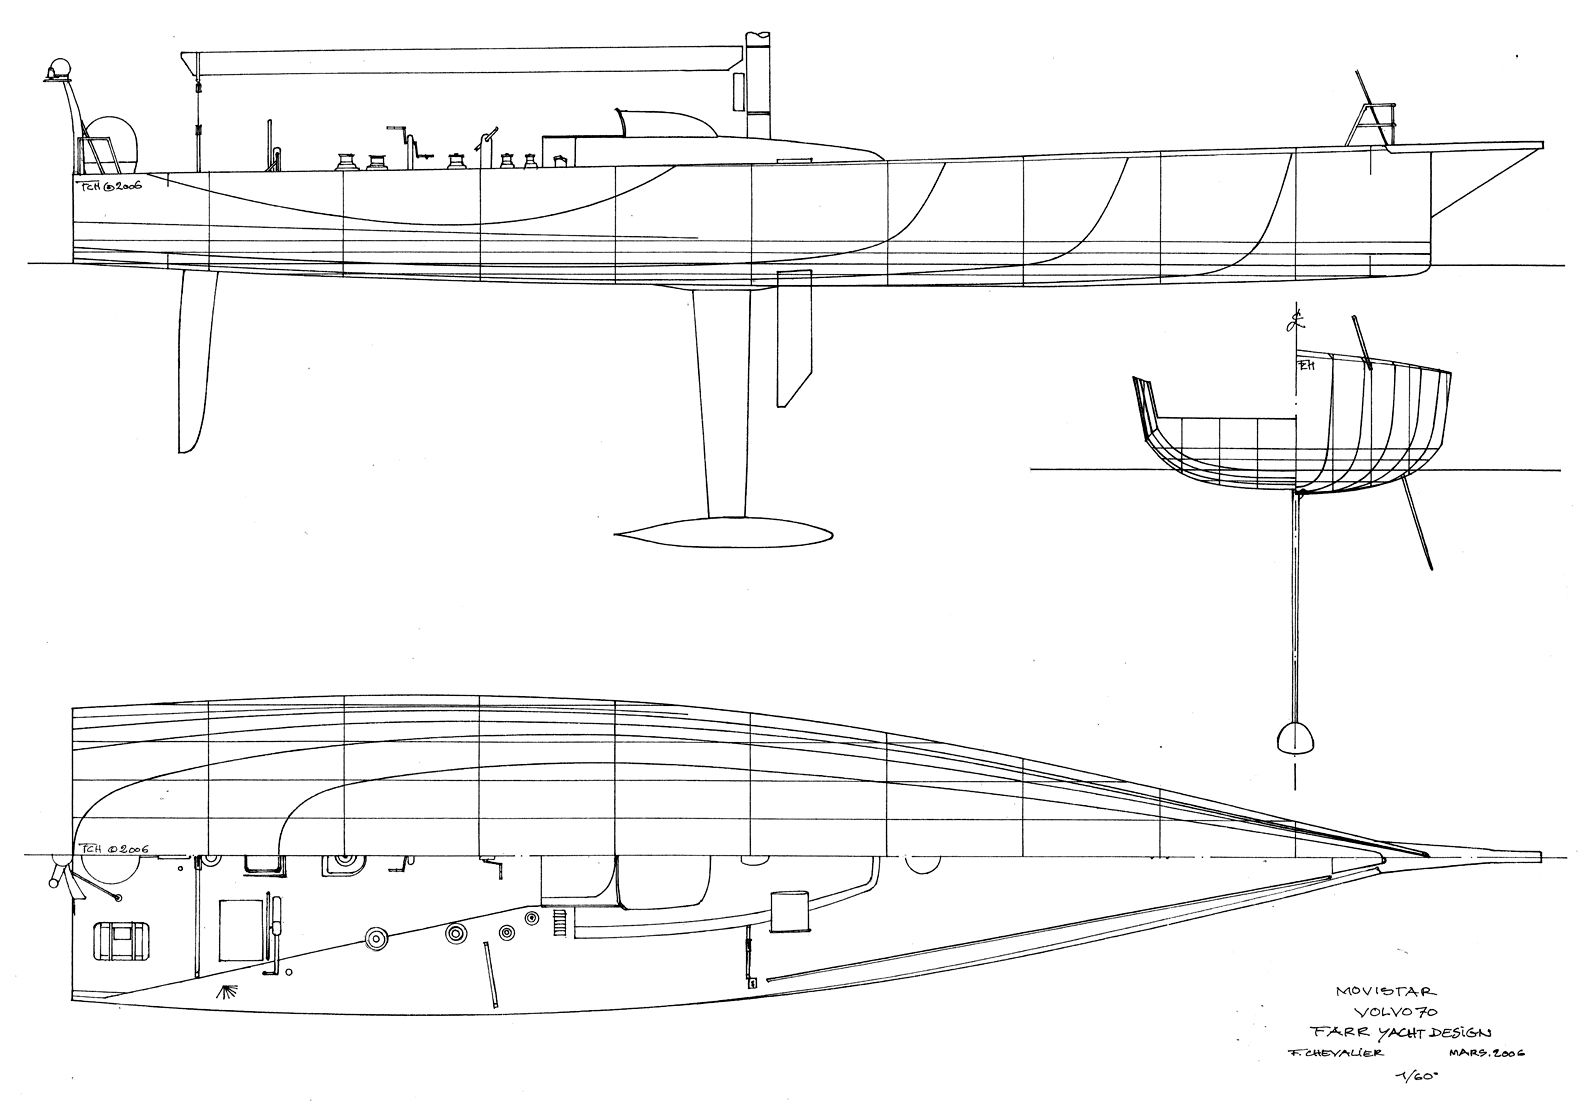 medium resolution of planing hull sailboat design google search yacht design boat design volvo ocean race